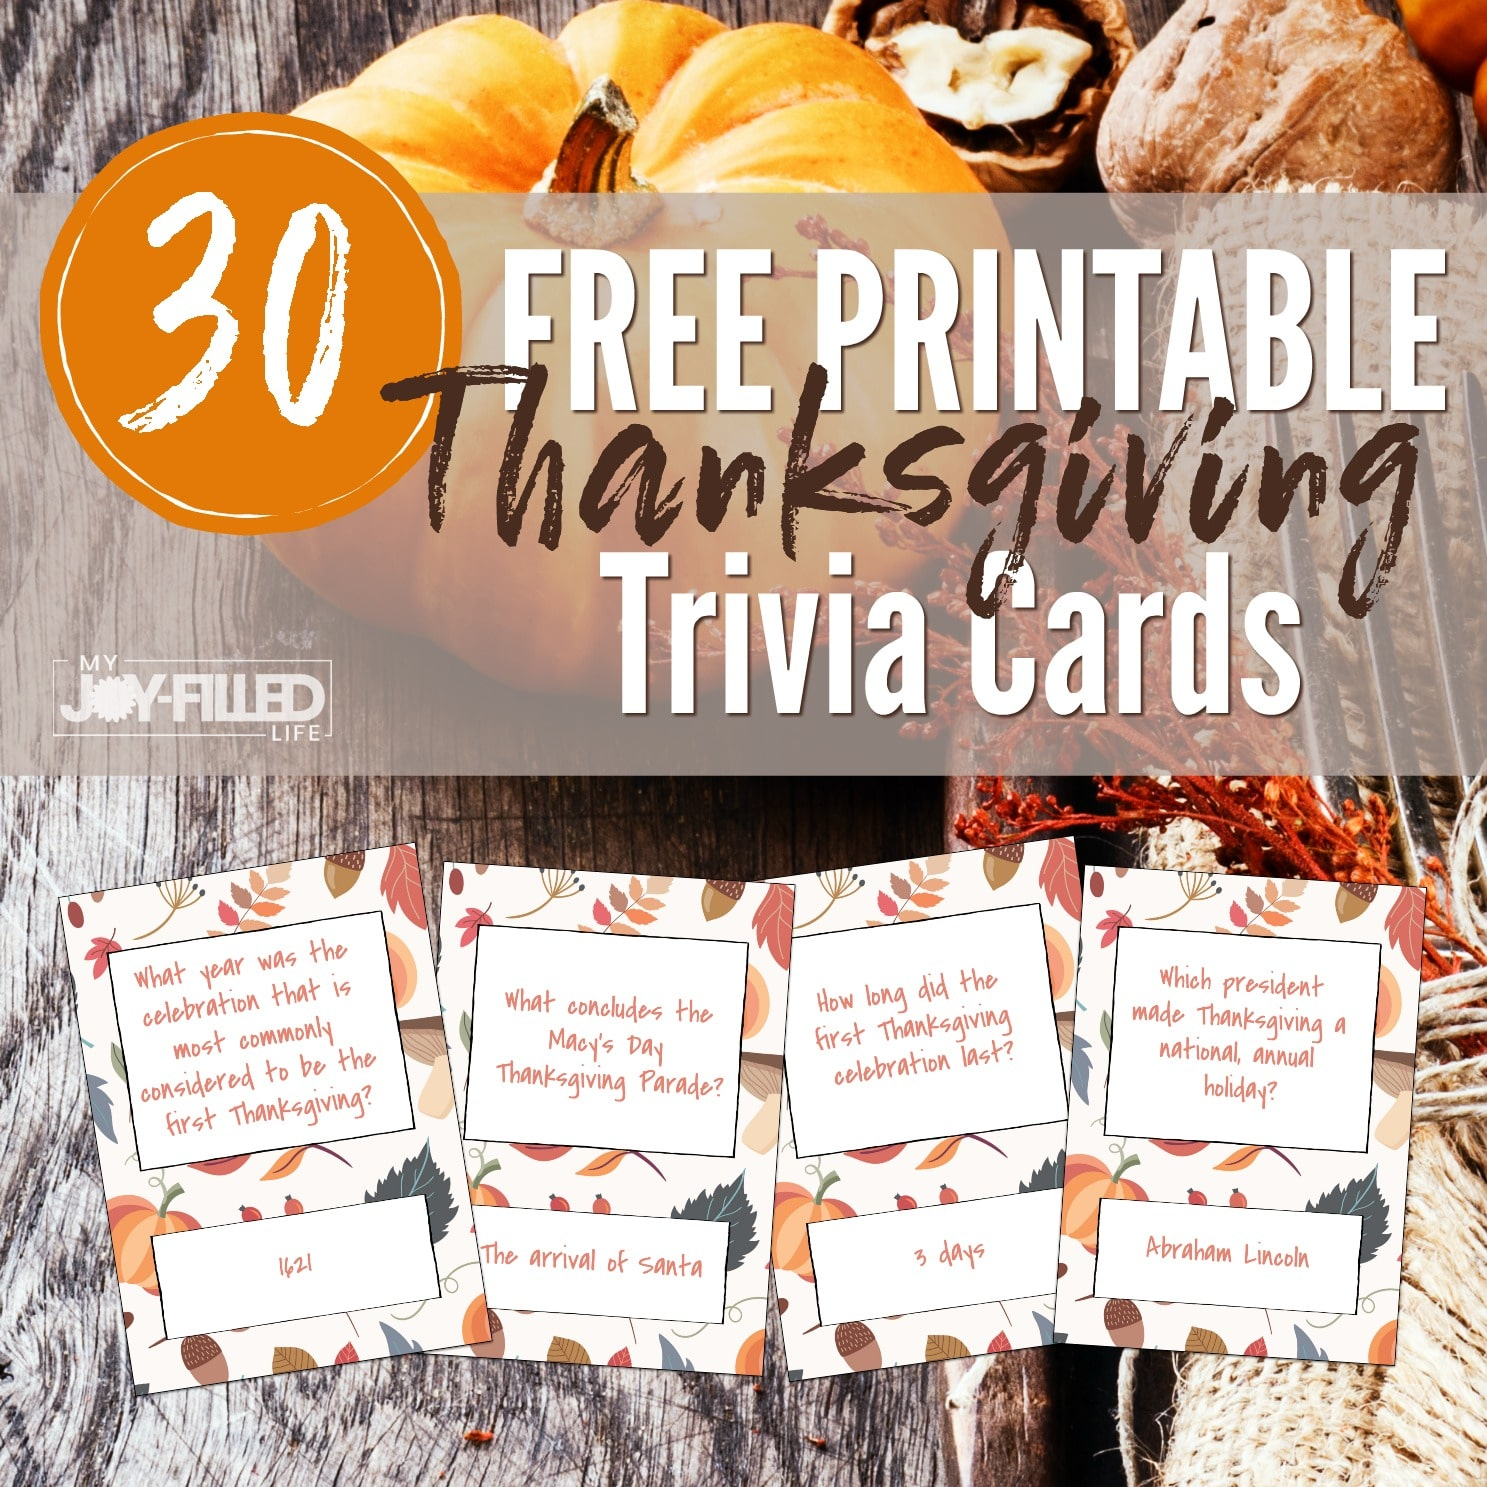 Printable Thanksgiving Trivia Cards